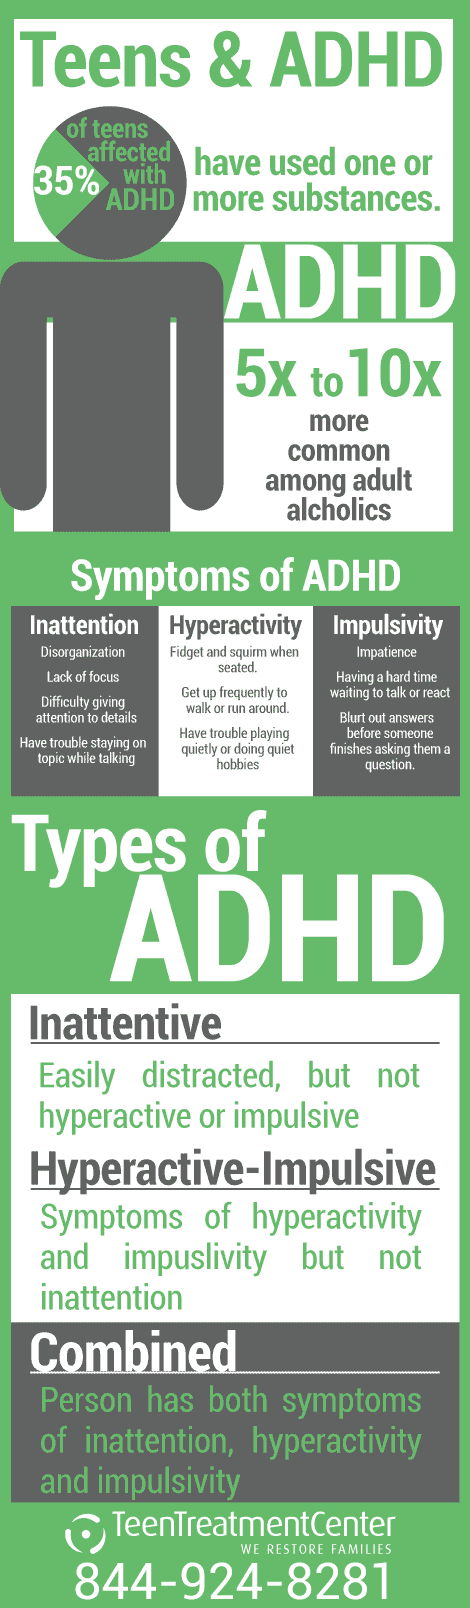 Teen ADHD and Substance Abuse Infographic